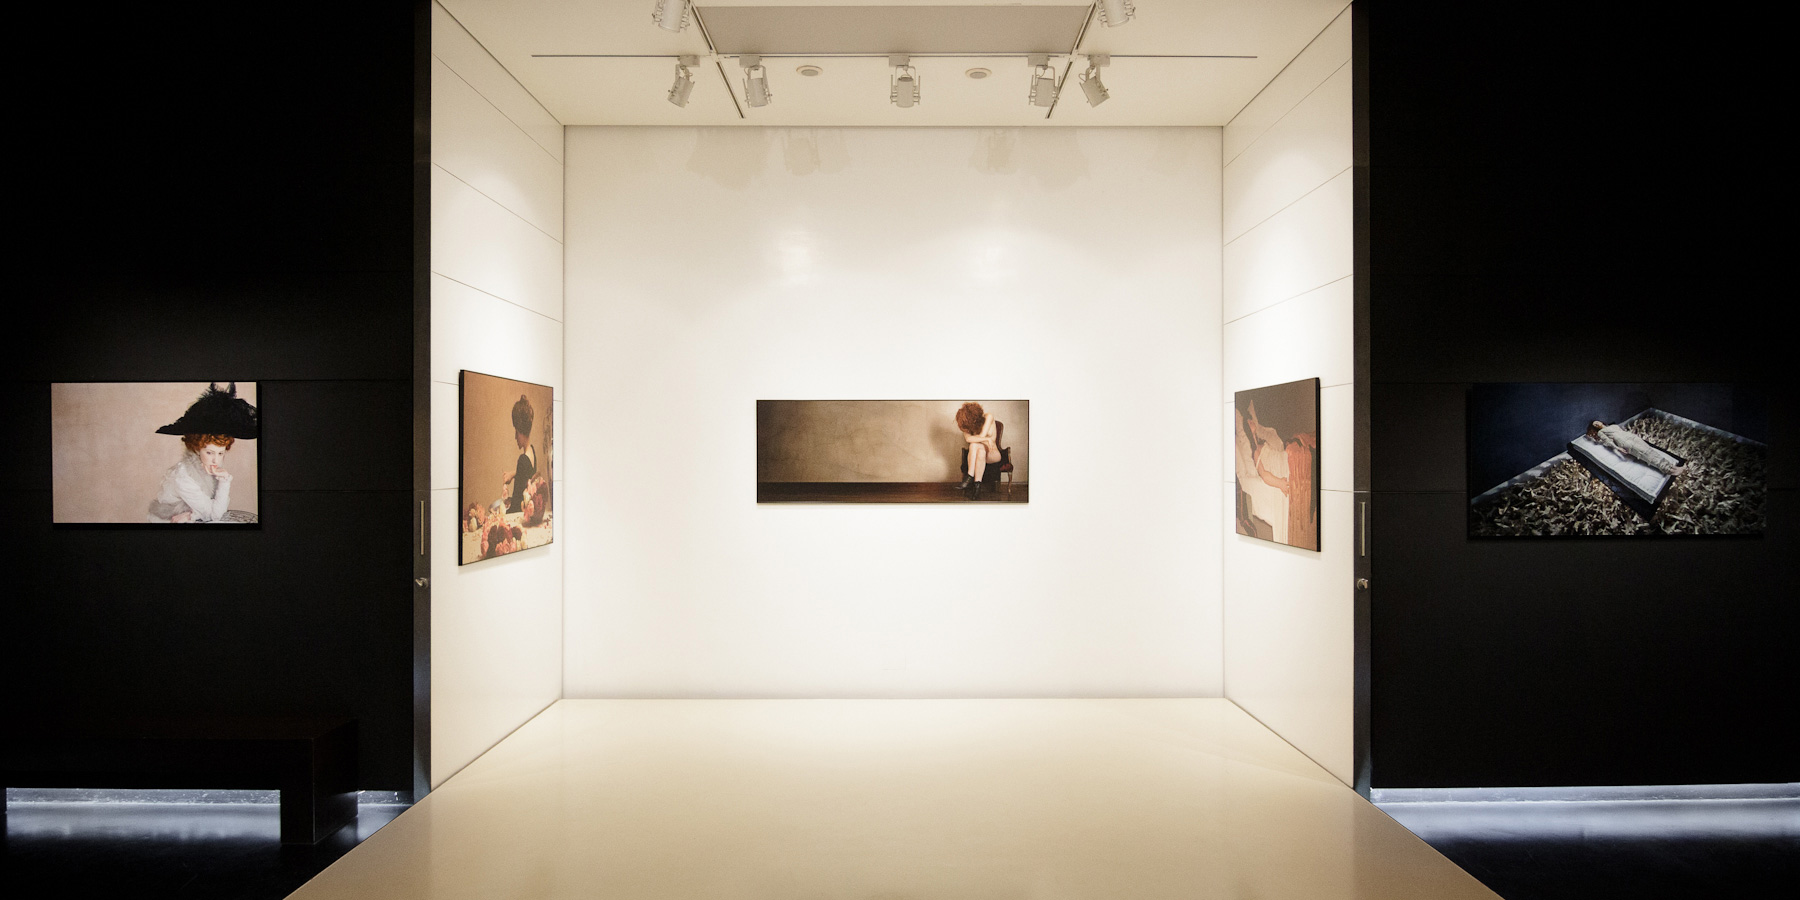 Tania & Lazlo's solo exhibithion in Milancurated by Carlo Sala